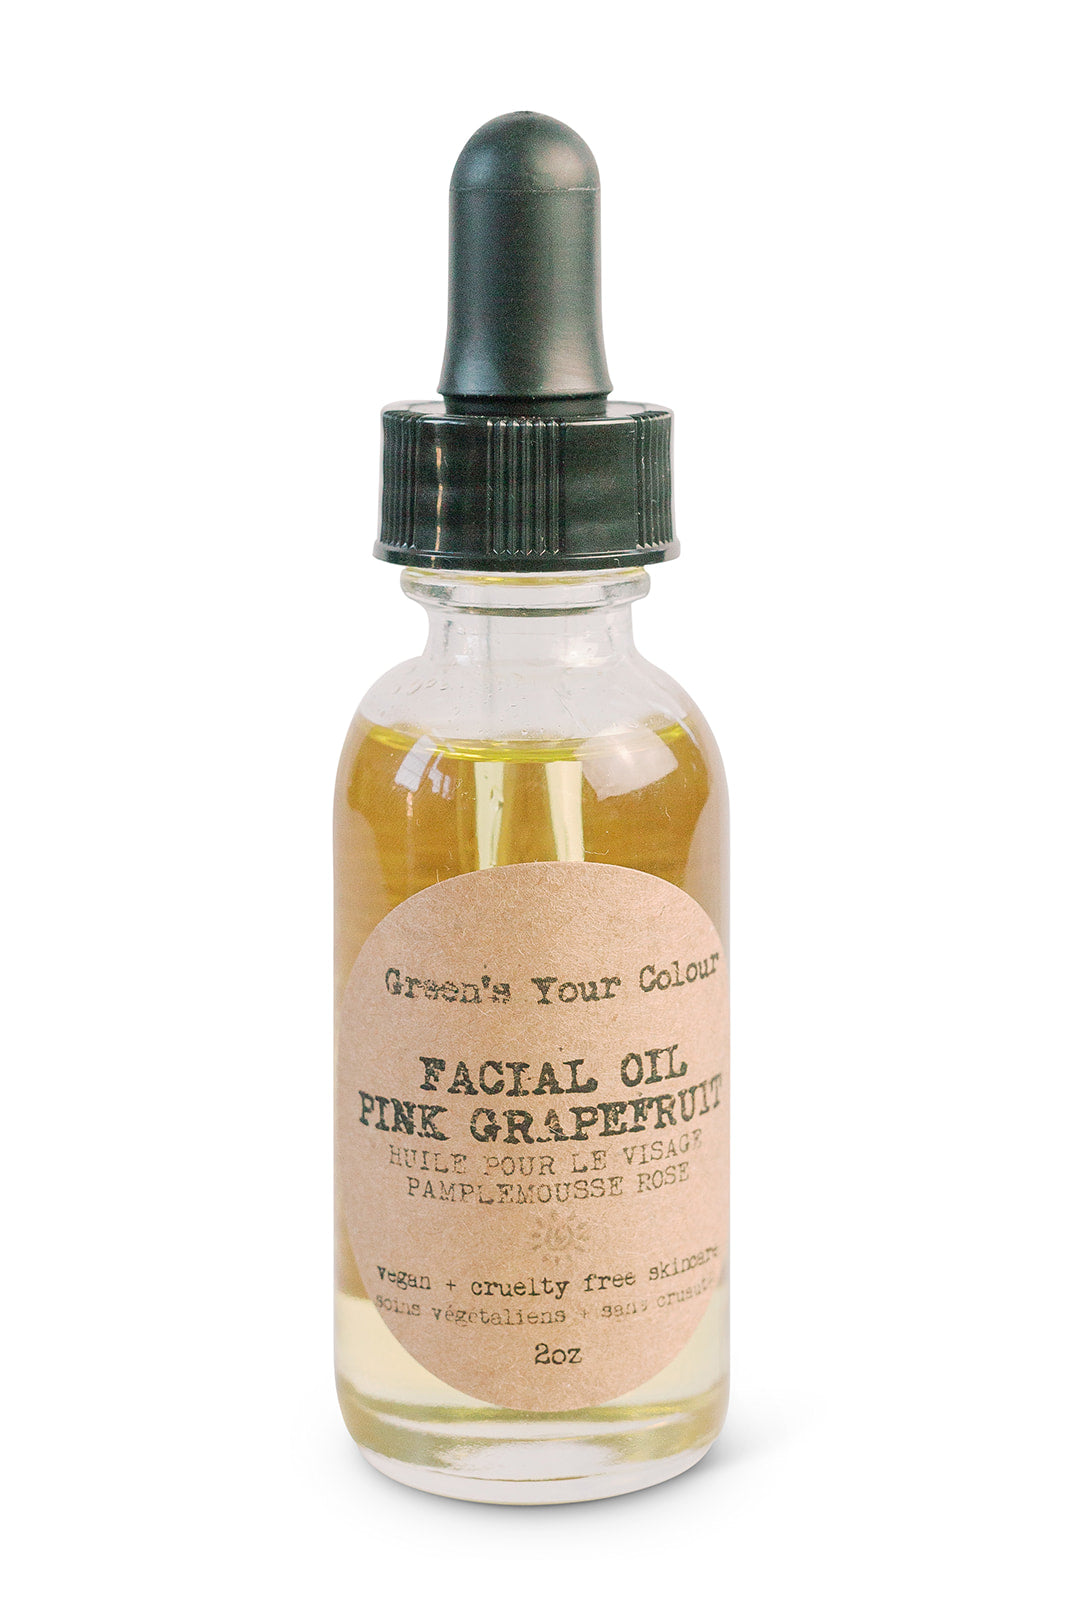 FACIAL OIL PINK GRAPEFRUIT